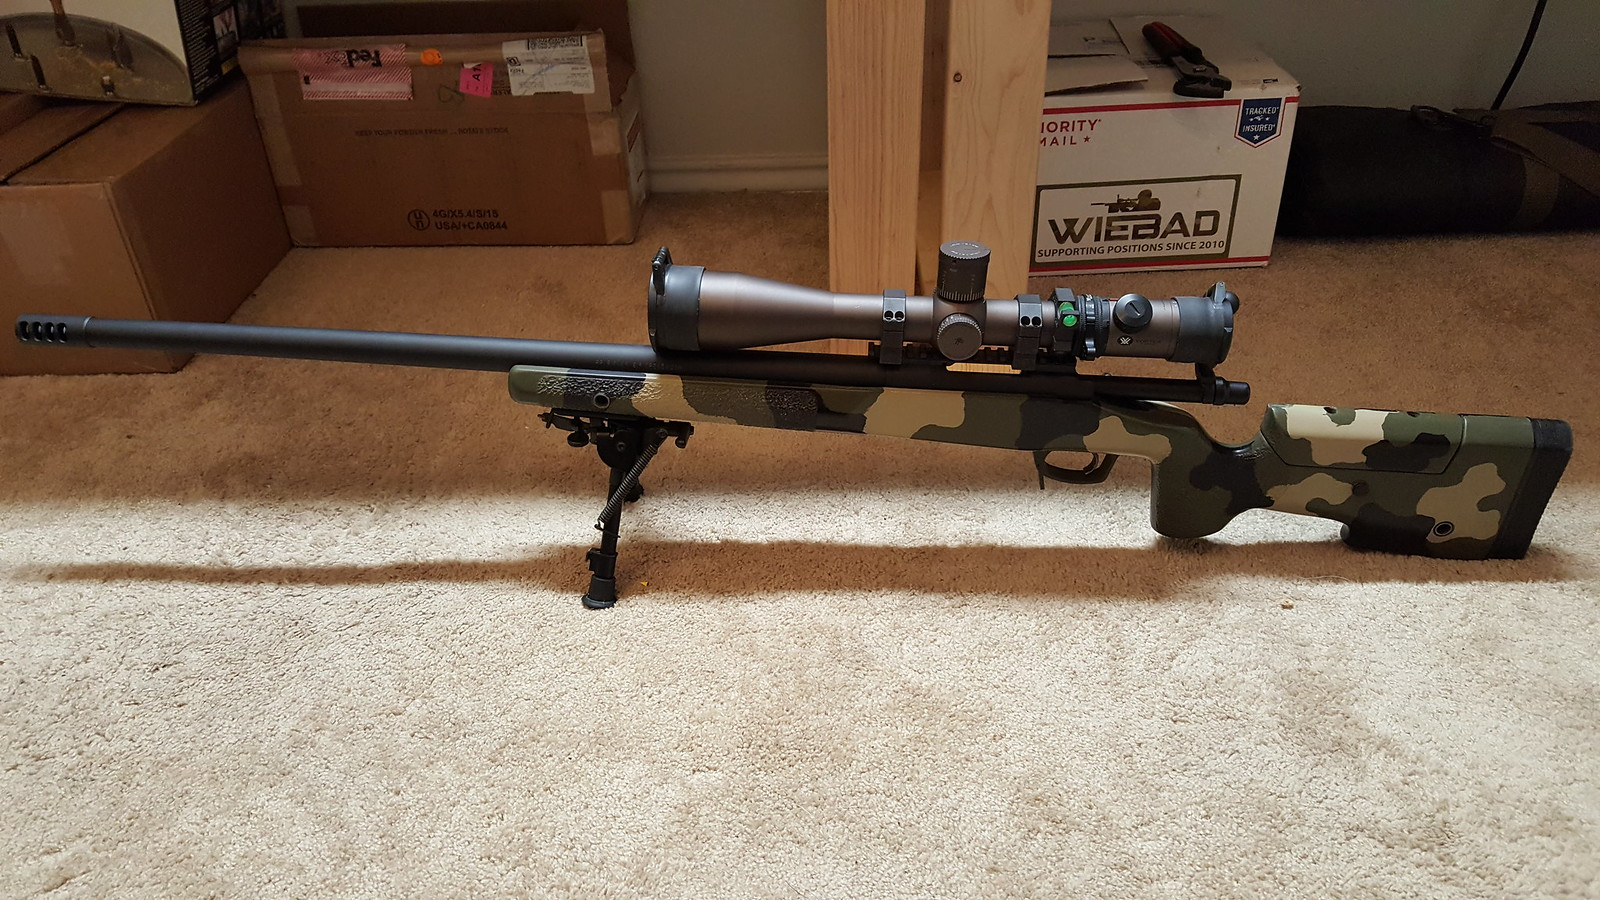 Remington 700 build up  - Page 3 - DFW Mustangs